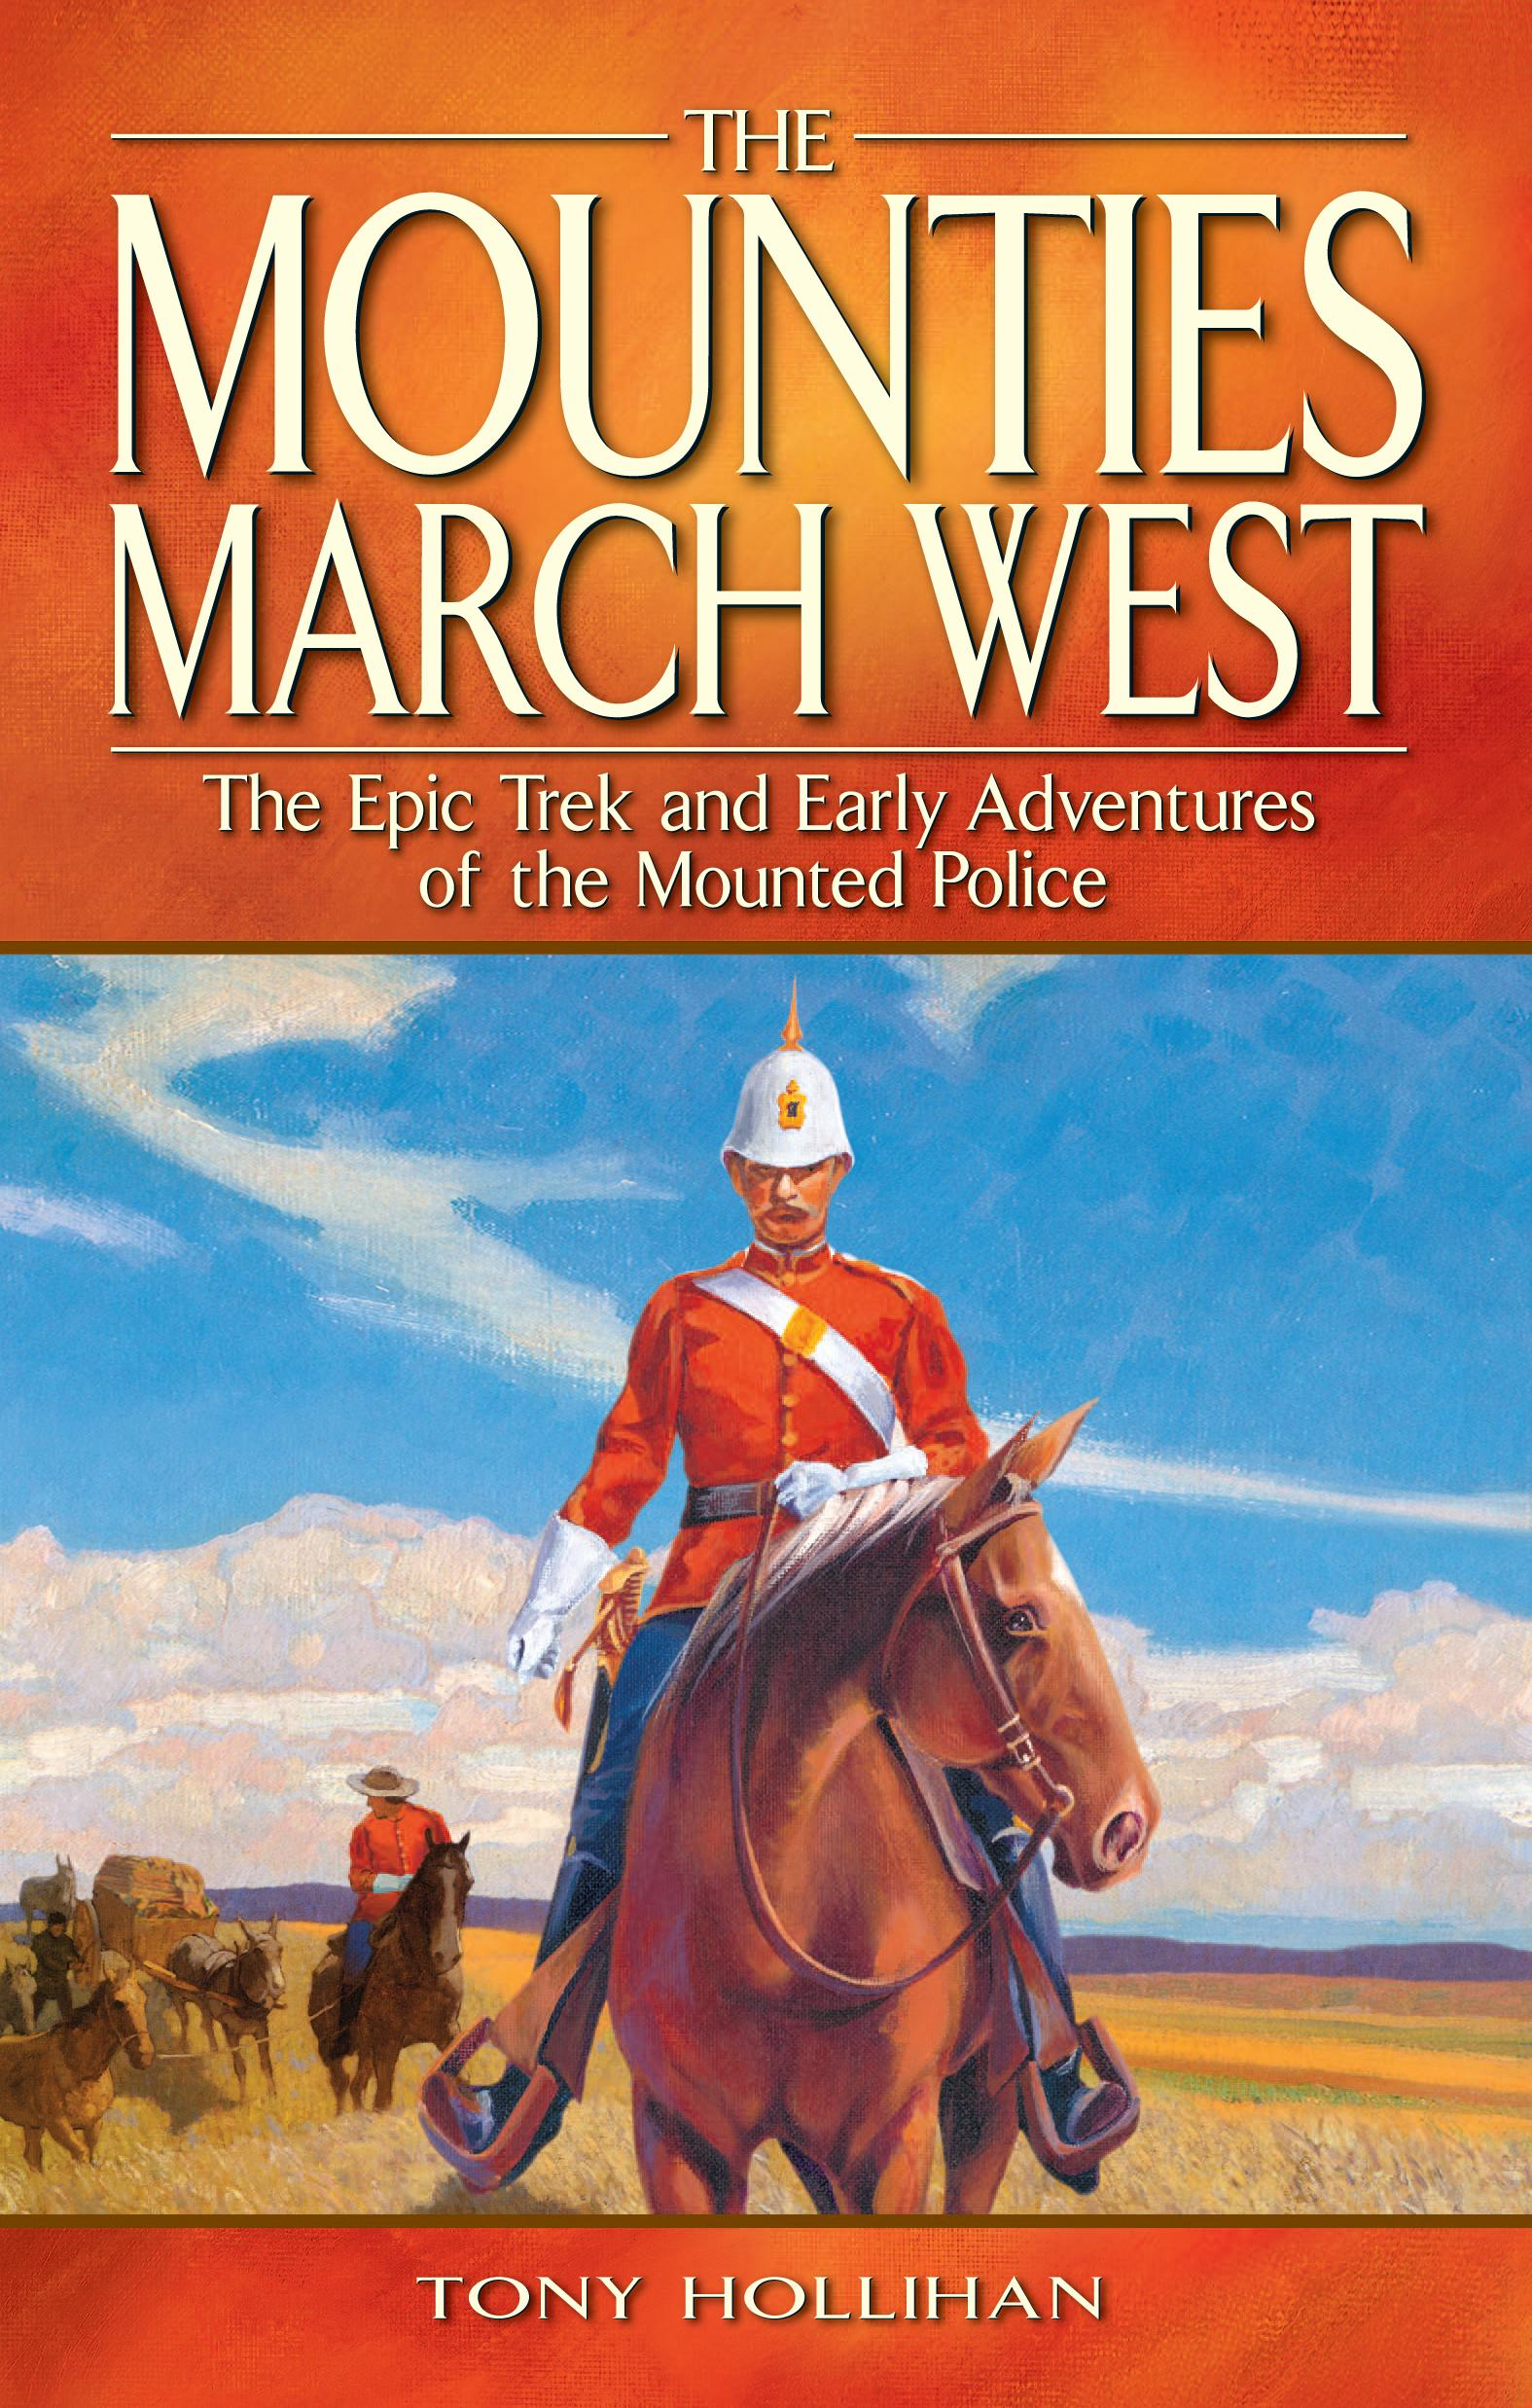 The Mounties March West